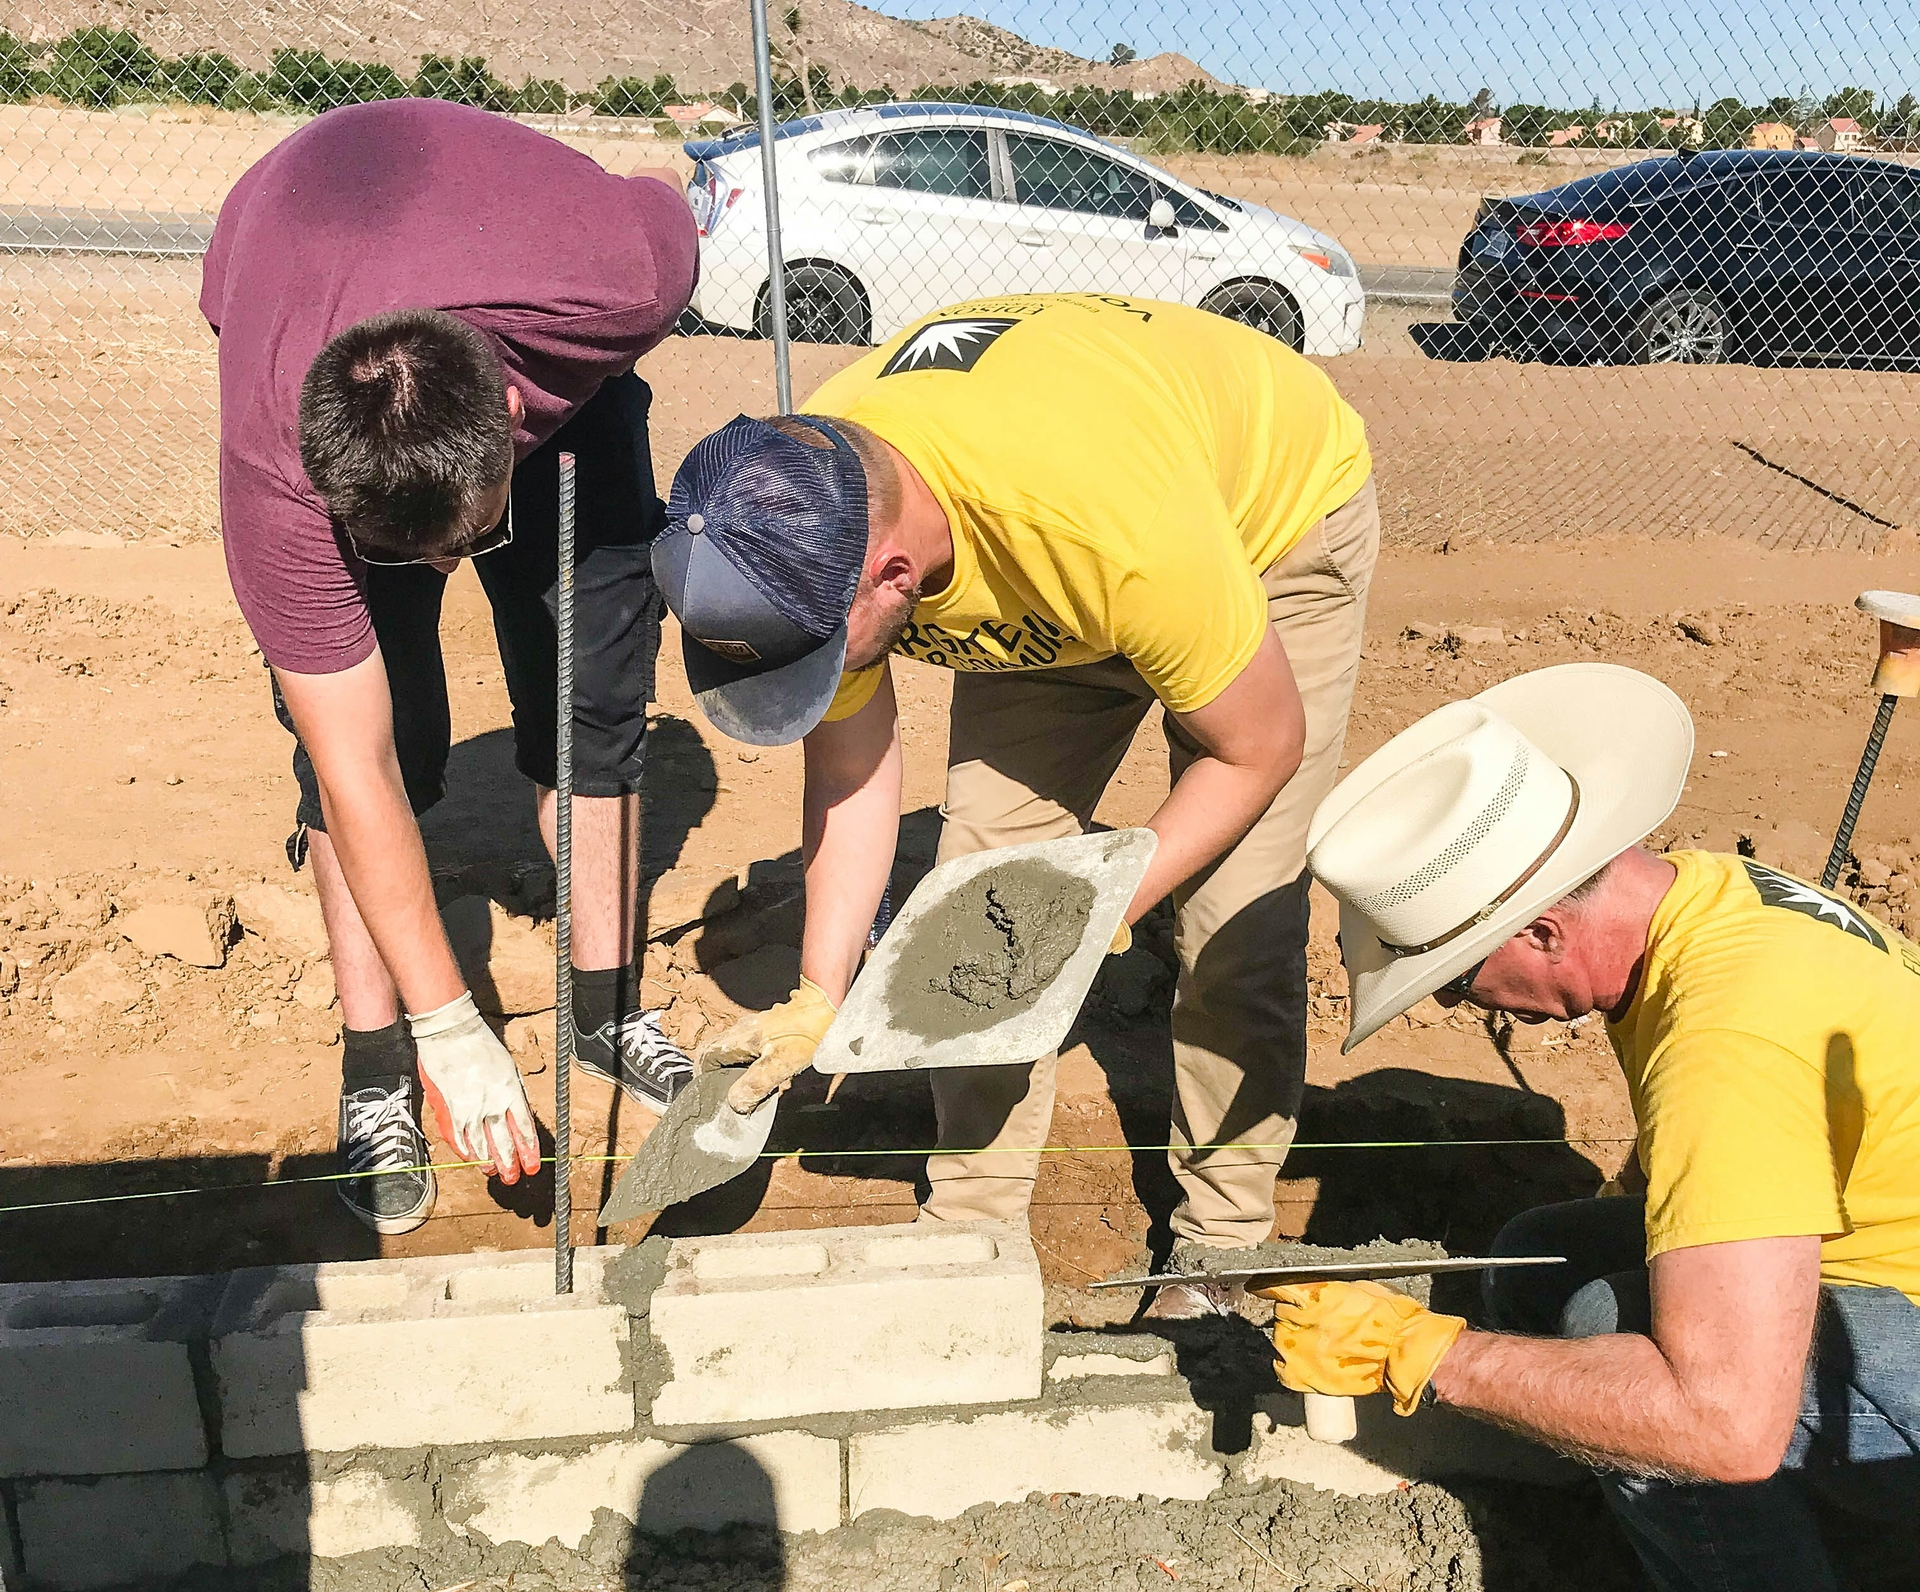 Volunteers worked together cementing blocks to construct a perimeter wall that will be part of a 56 home community for low-income veterans.